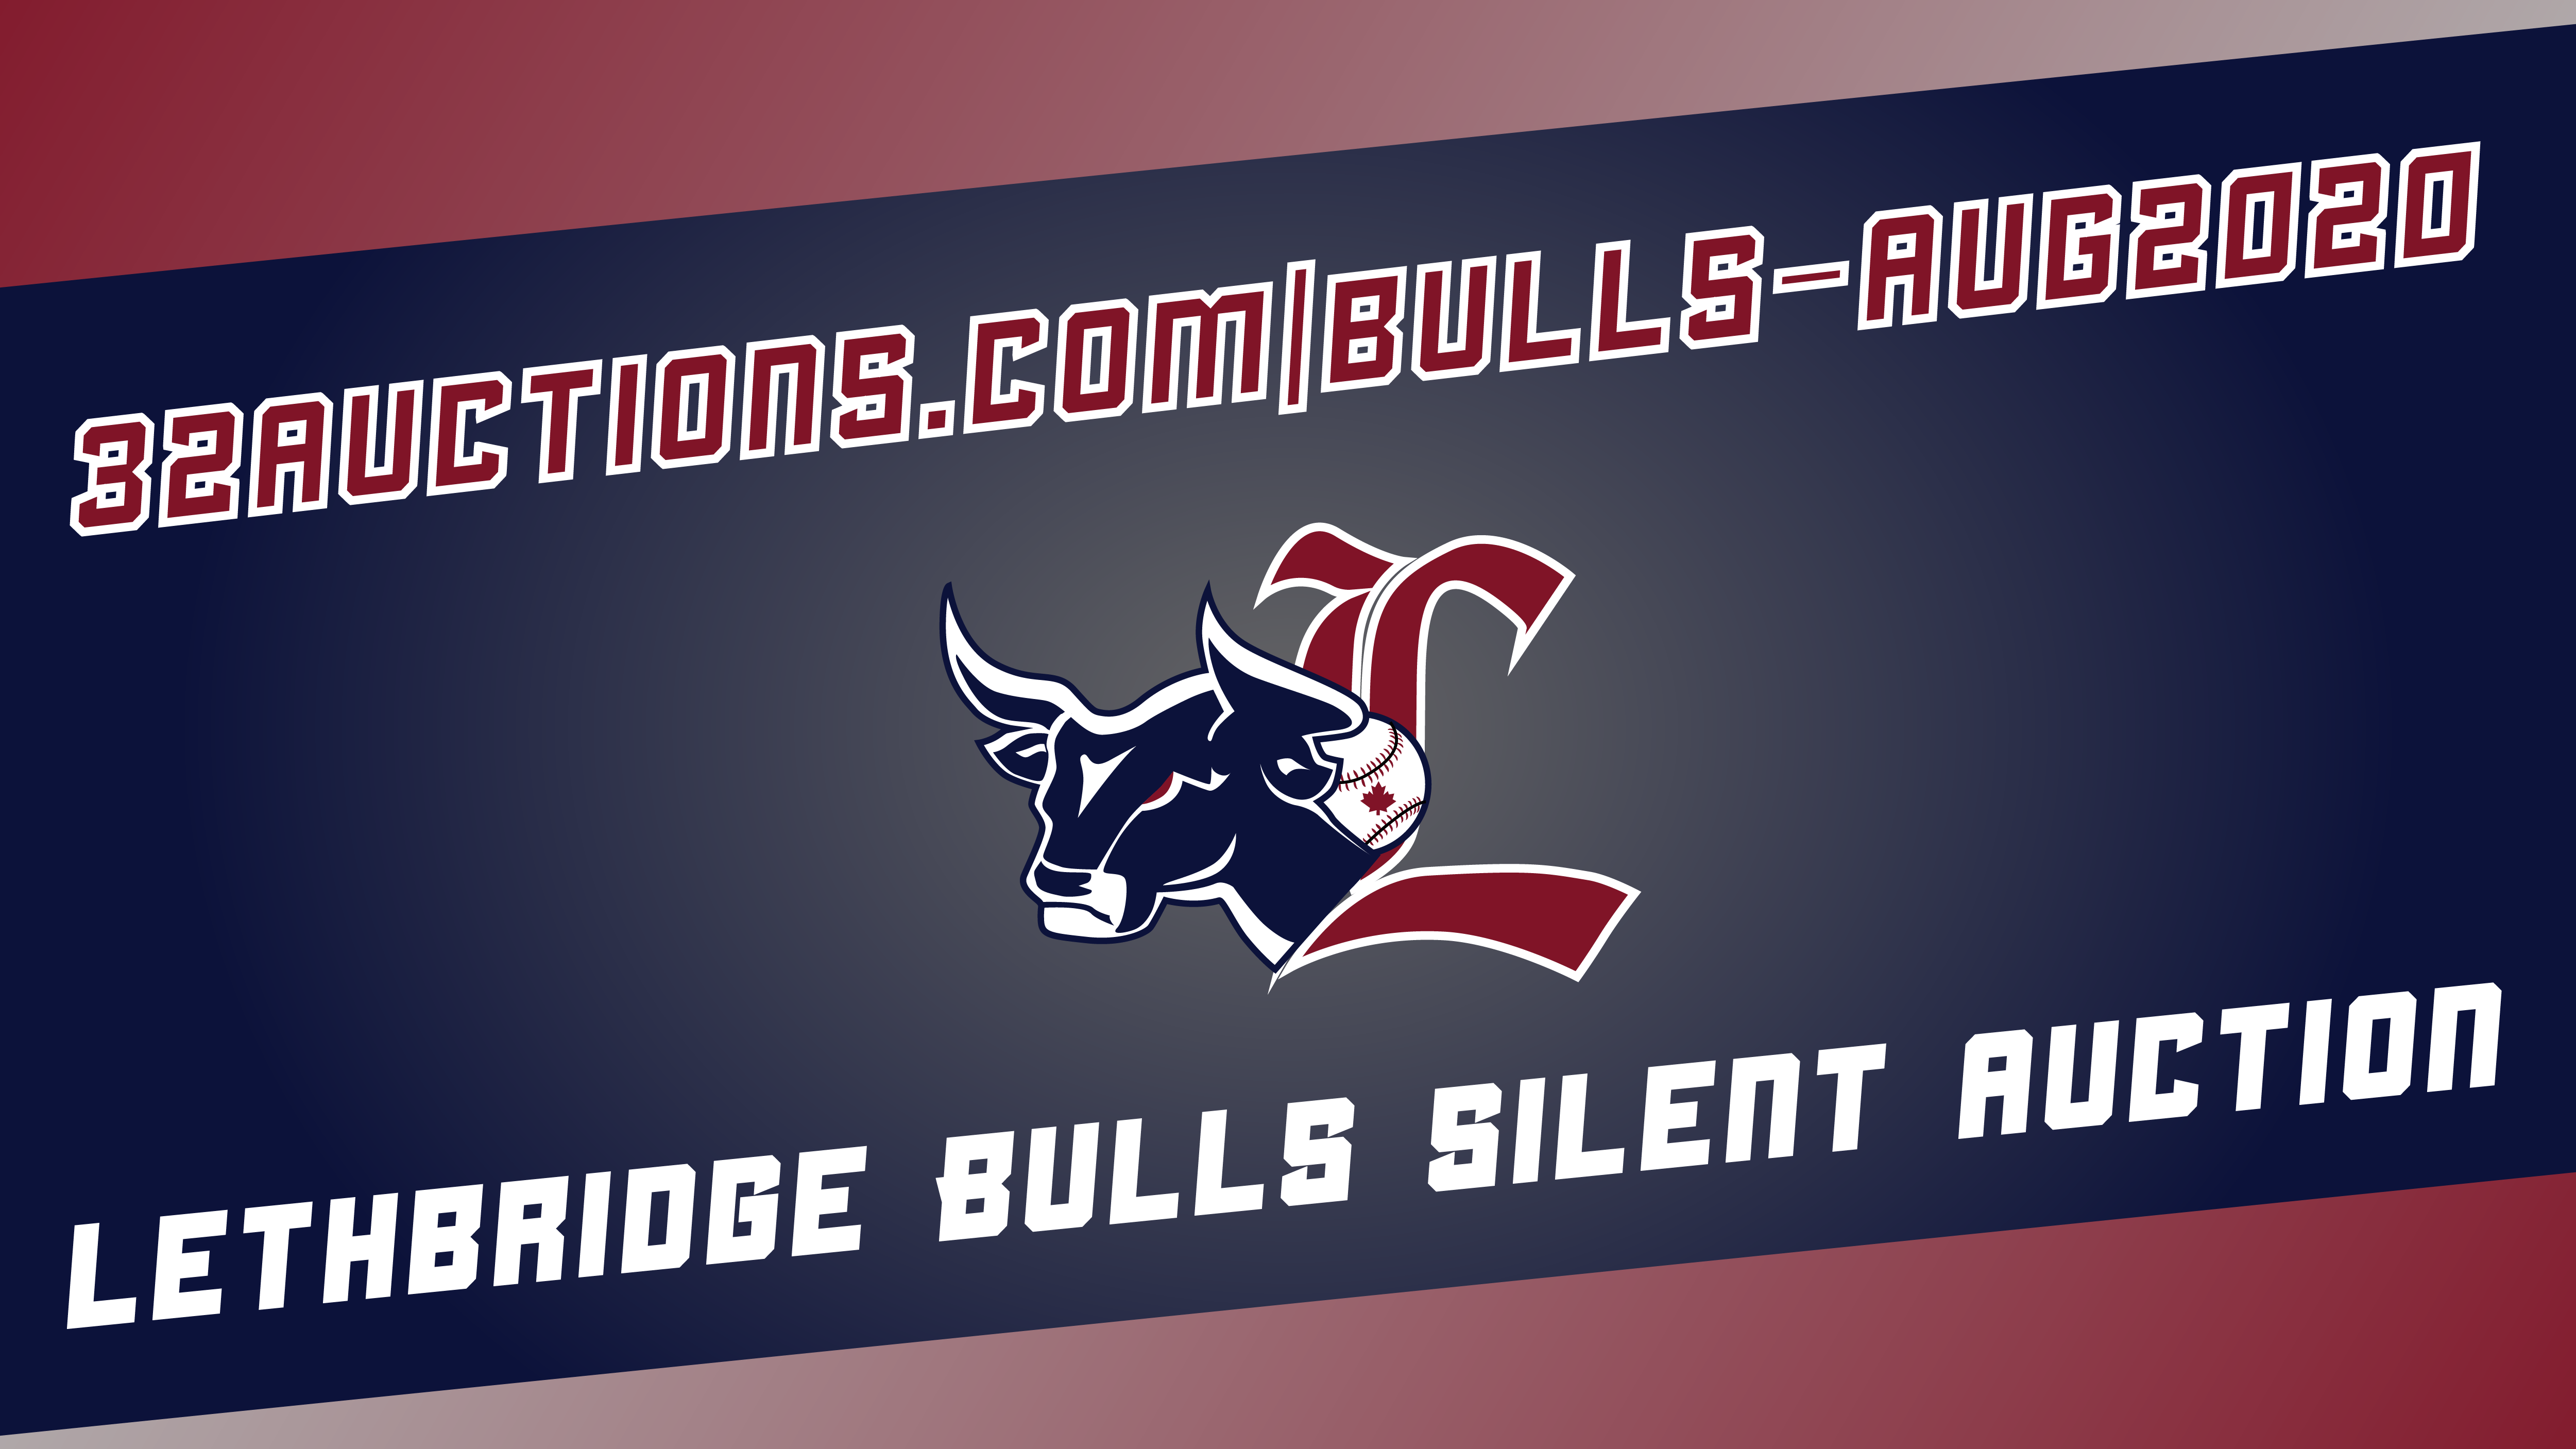 Lethbridge Bulls Silent Auction